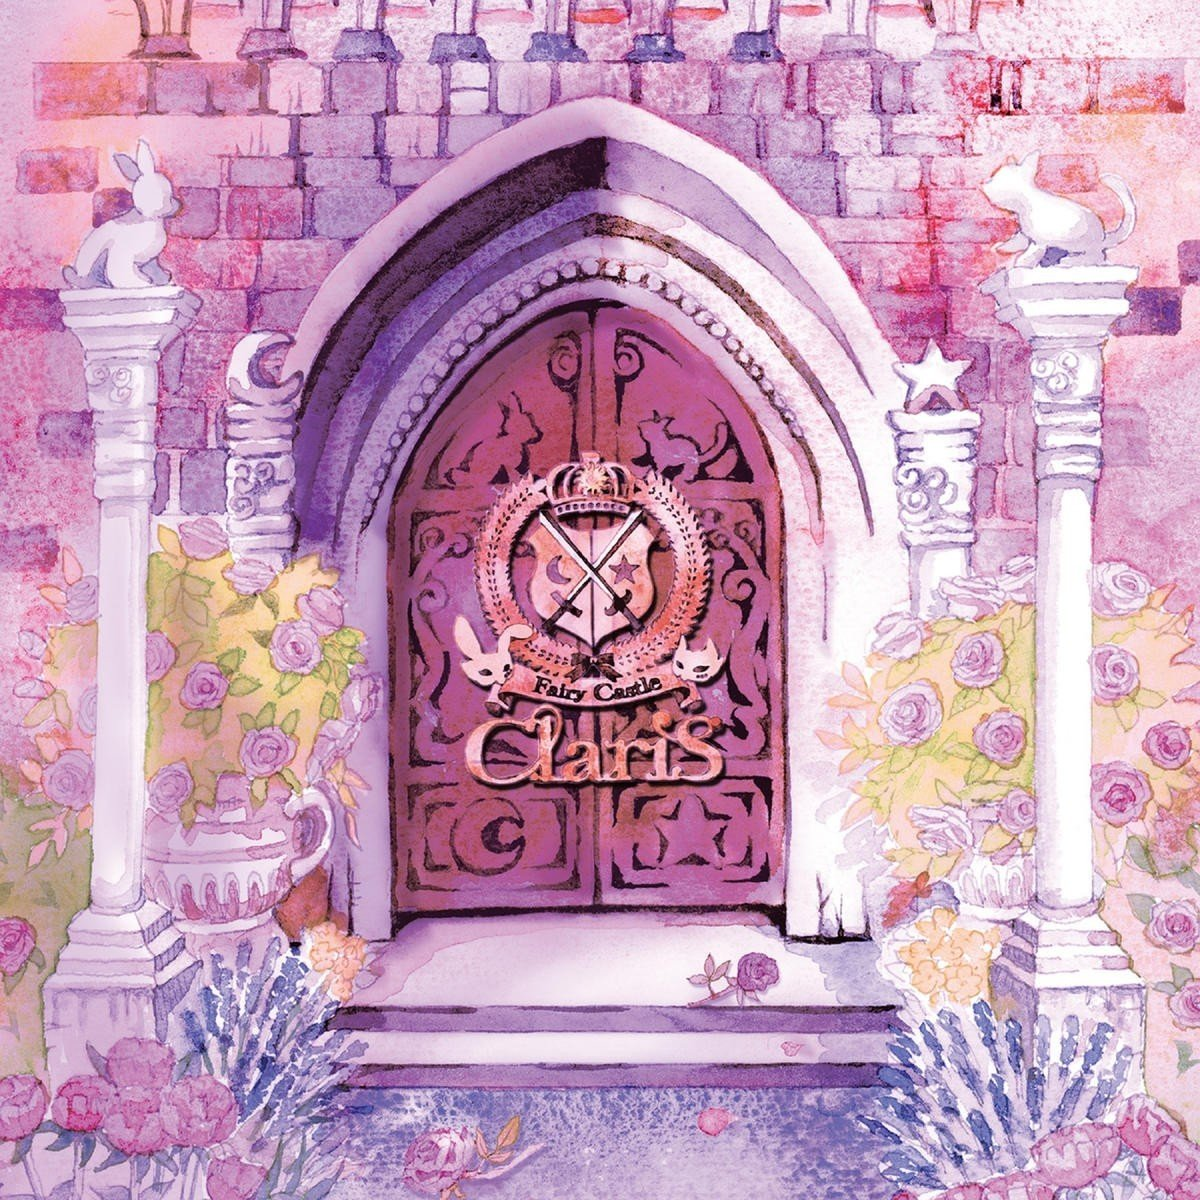 ClariS – Fairy Castle [FLAC / 24bit Lossless / WEB] [2017.01.25]